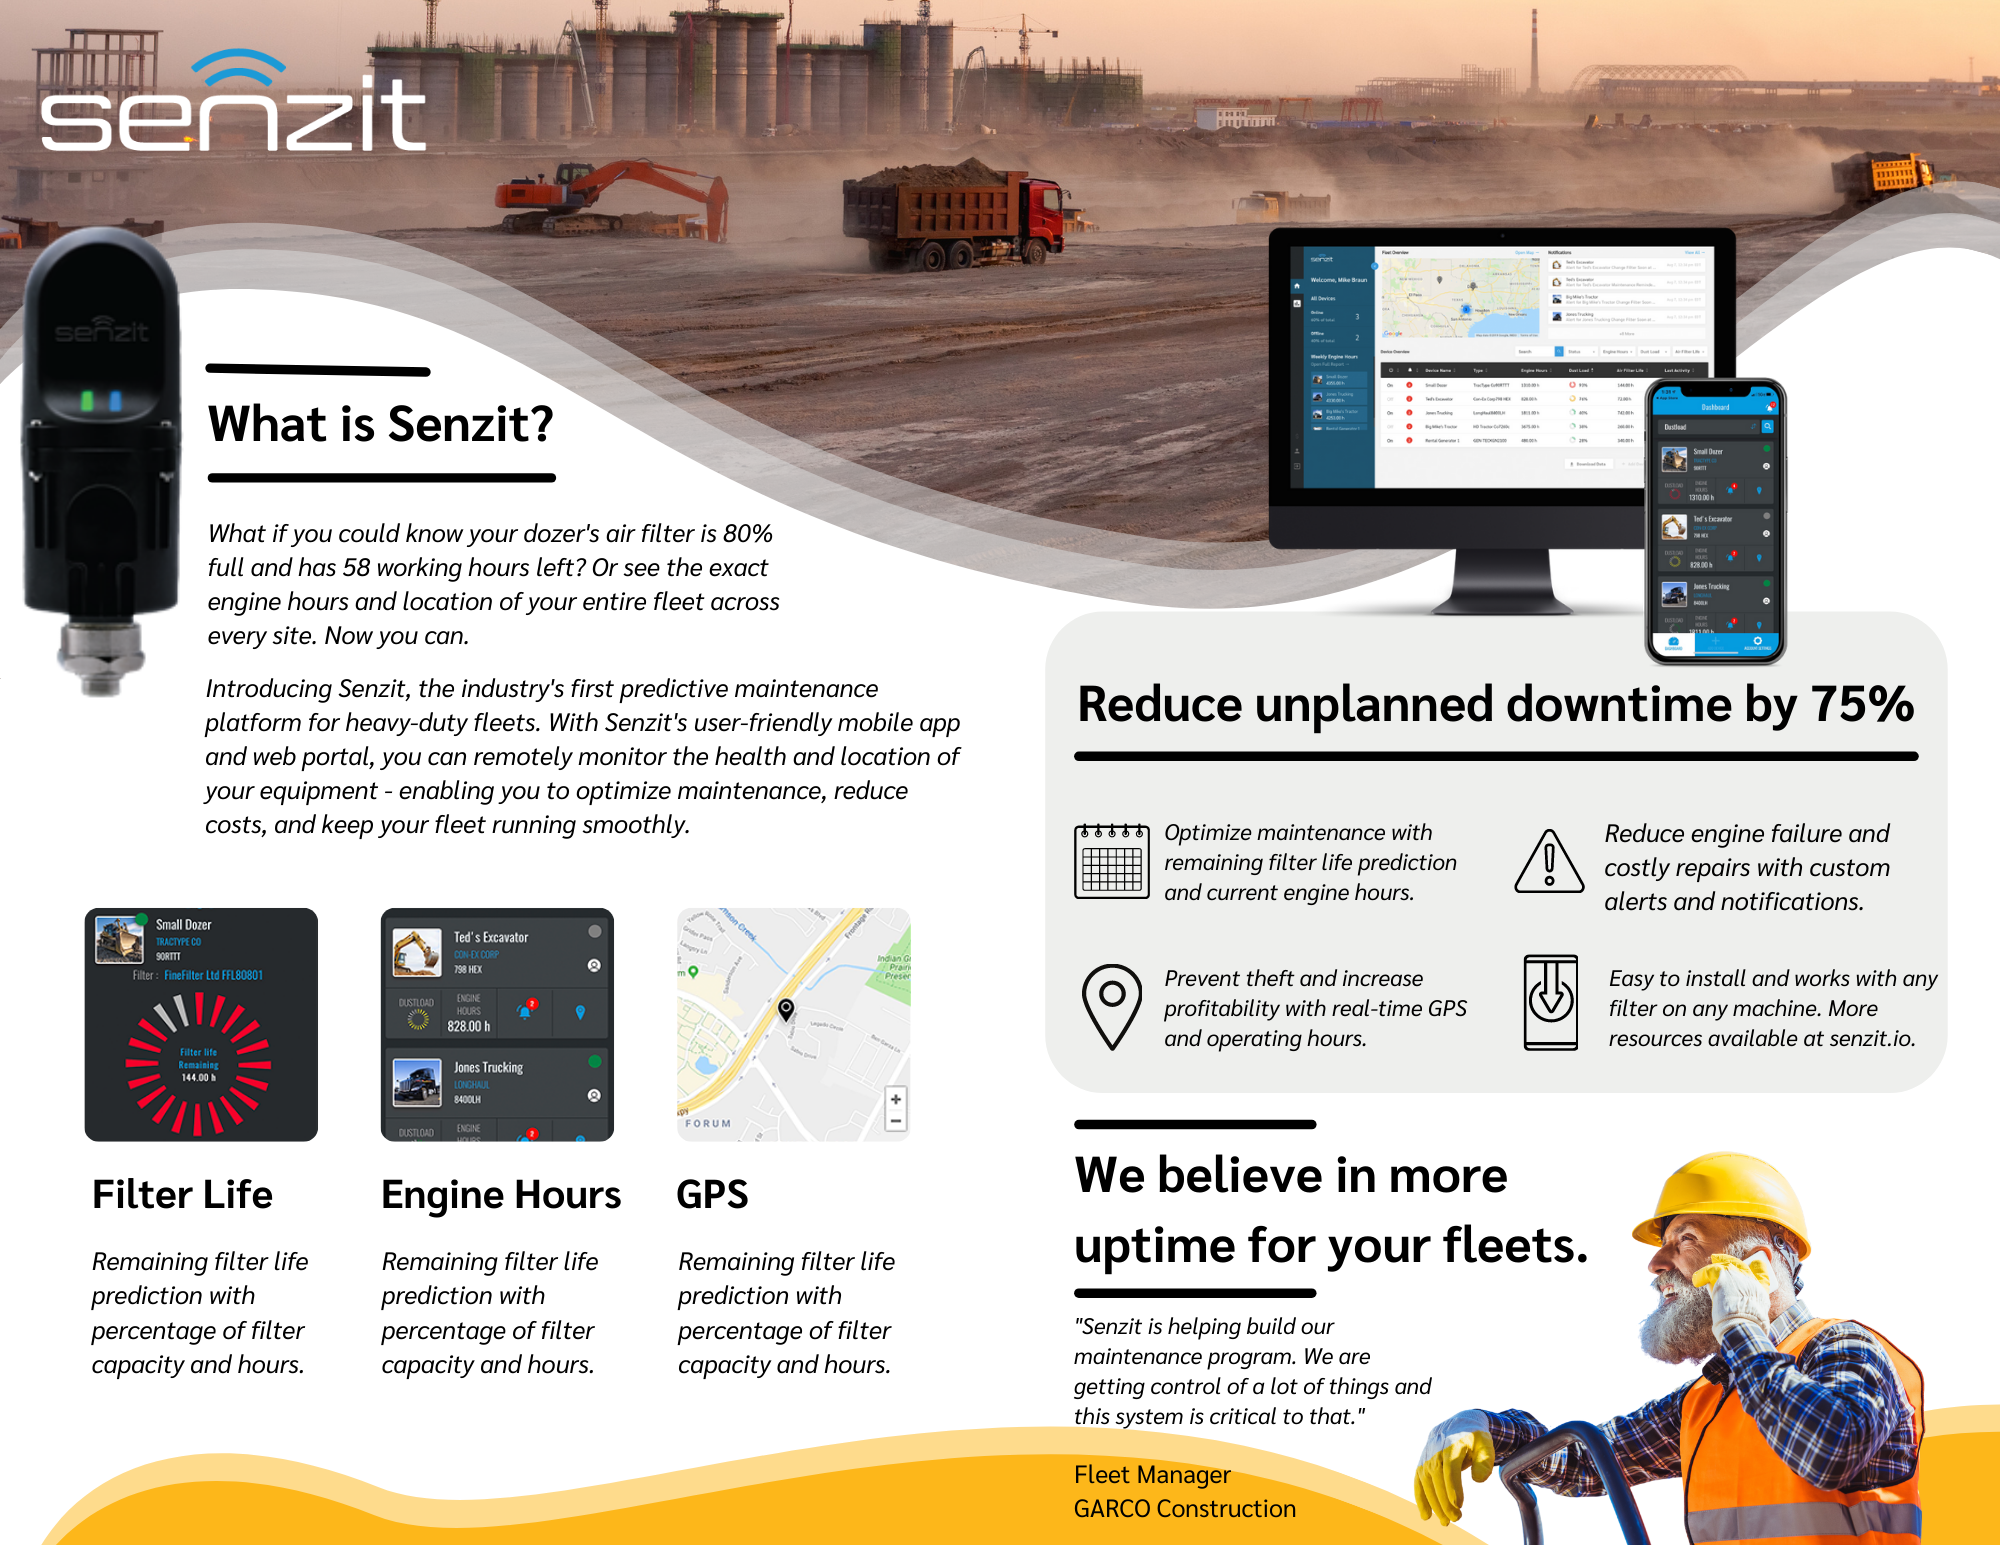 Senzit brochure and product overview.